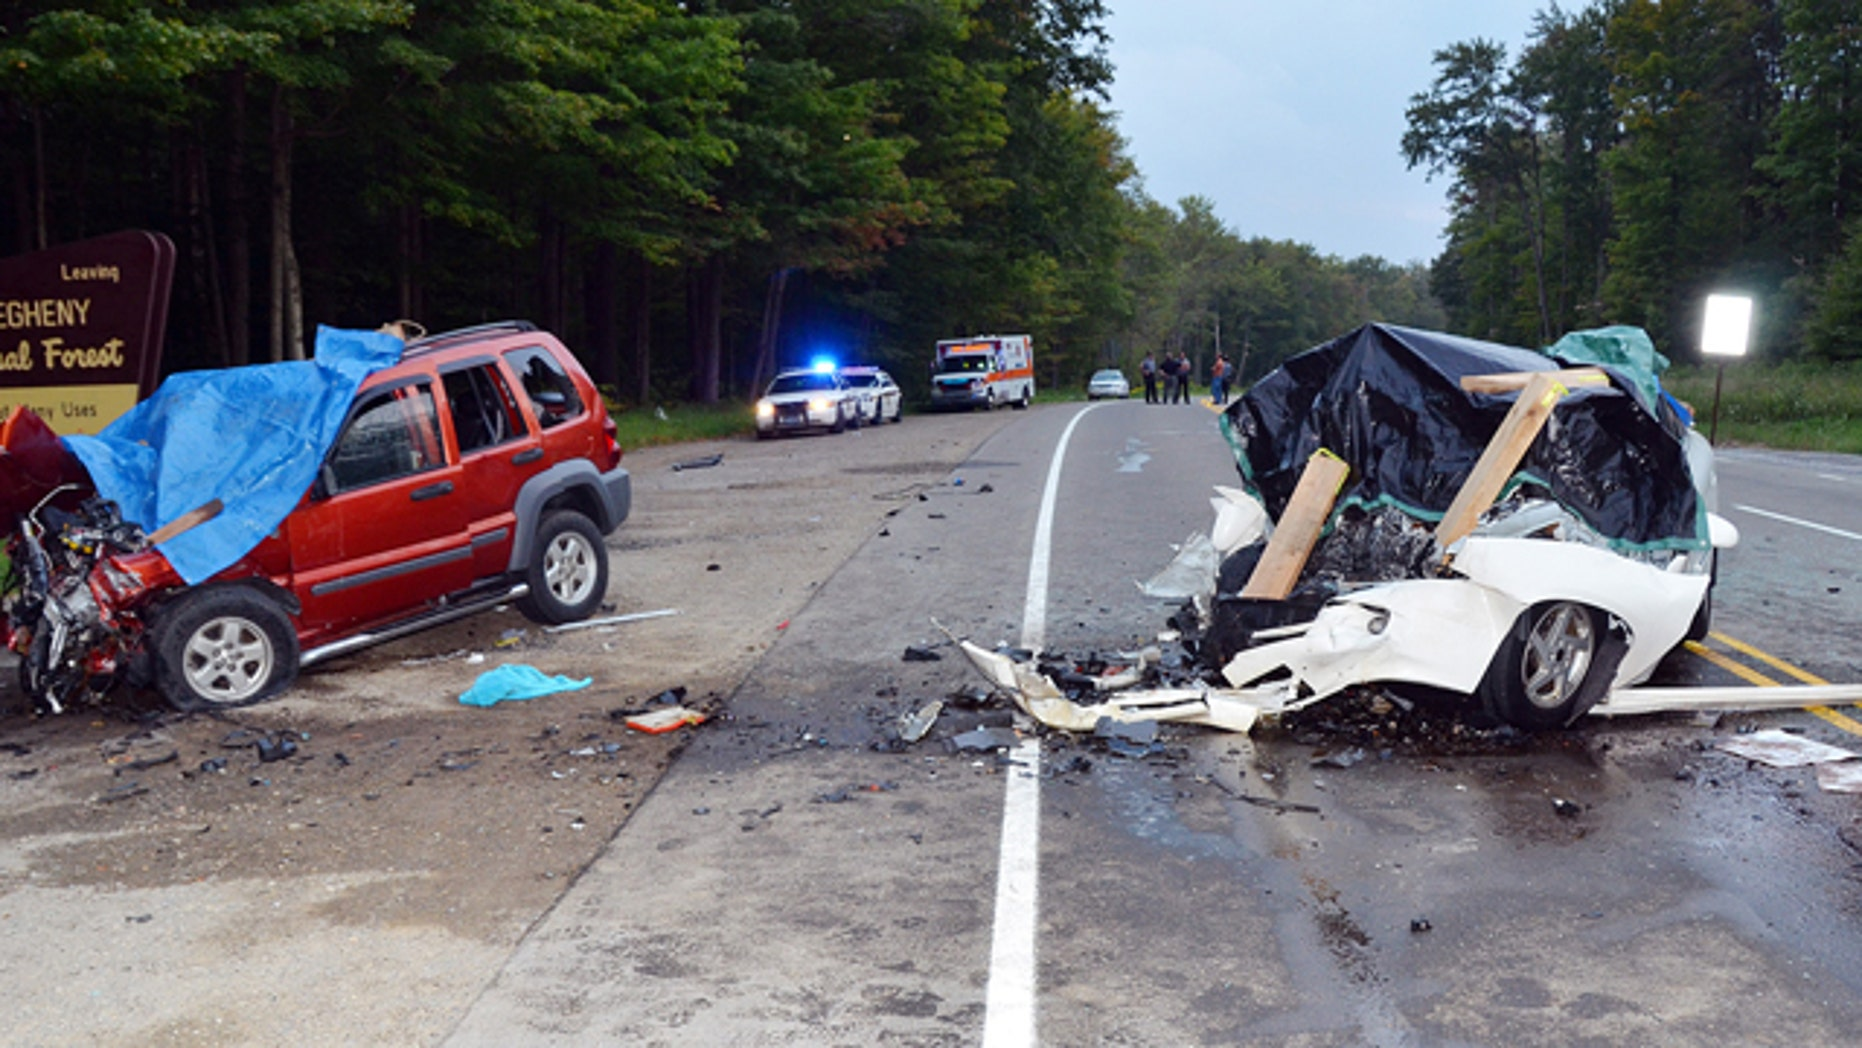 Aug. 31, 2013: The wreckage of two cars which collided on U.S. Route 219 in Hamlin Township, Pa.